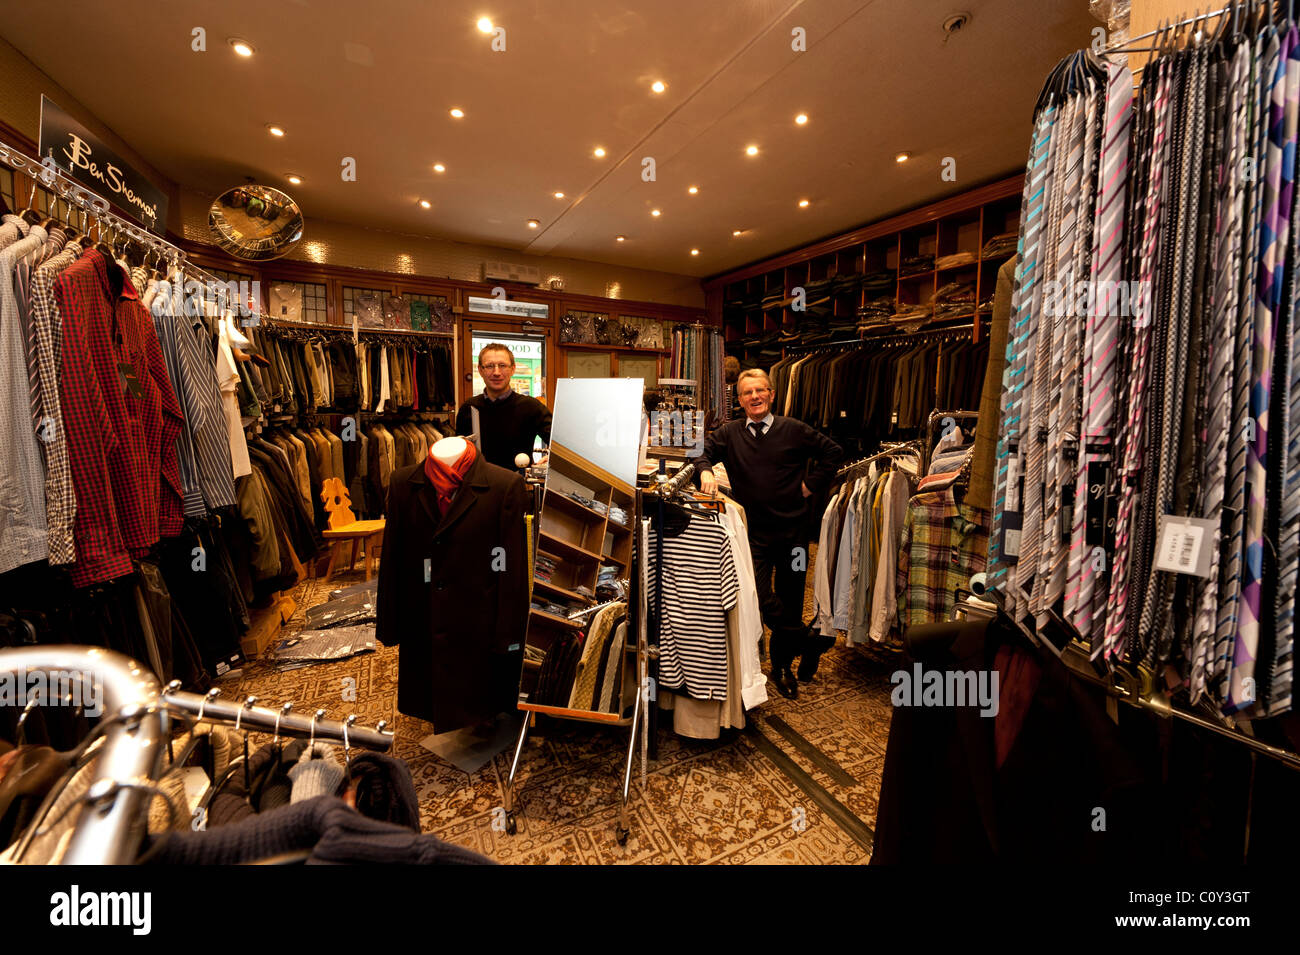 Interior Mens Clothing Shop High Resolution Stock Photography And Images Alamy